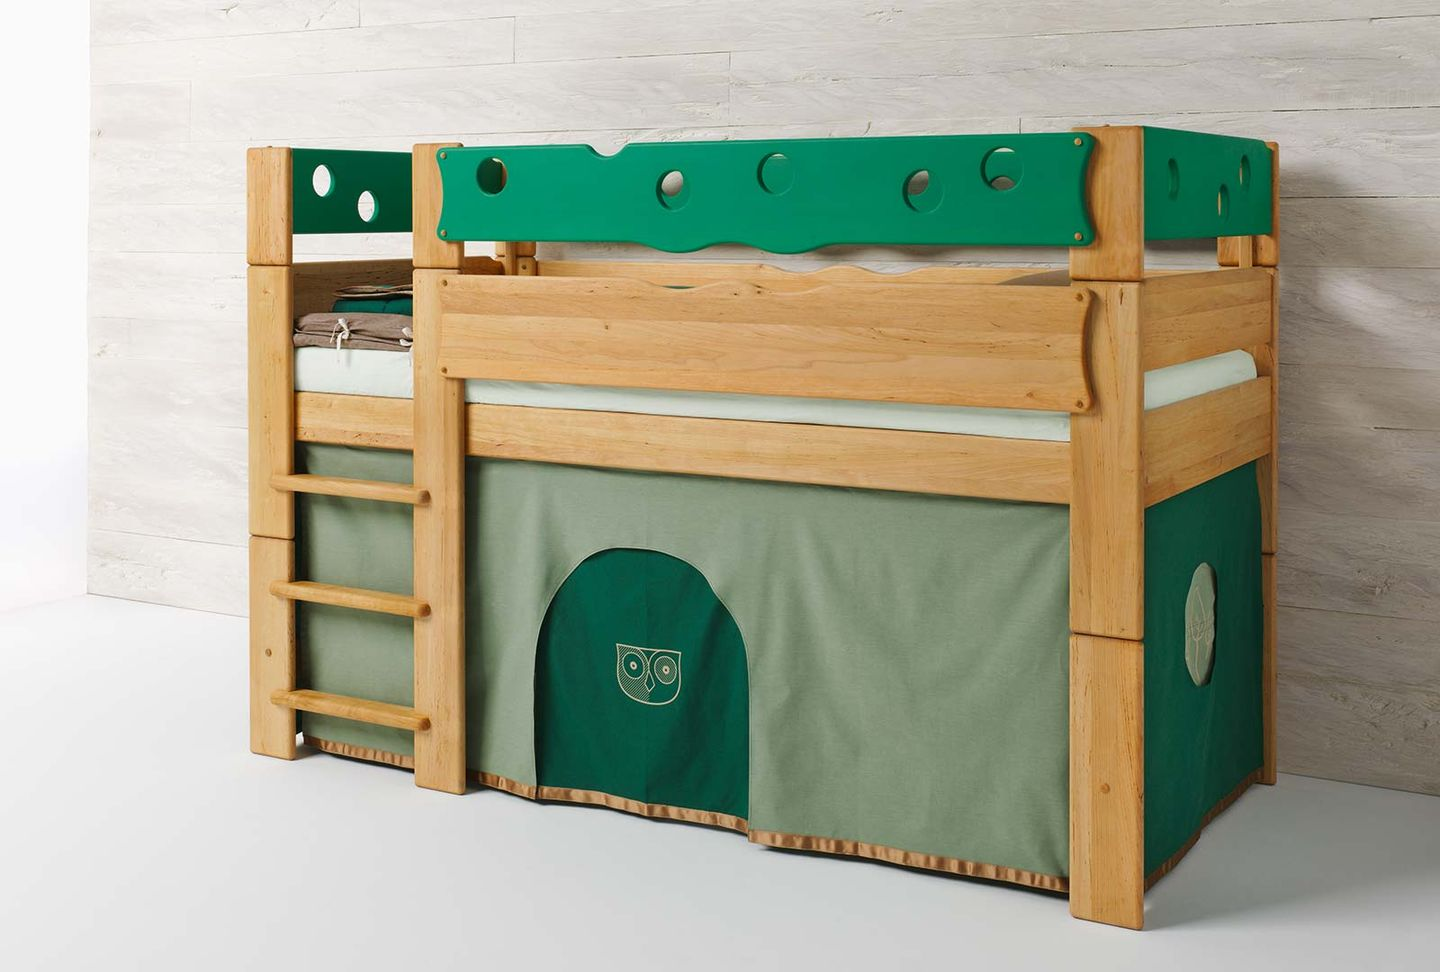 mobile child's bed made of wood